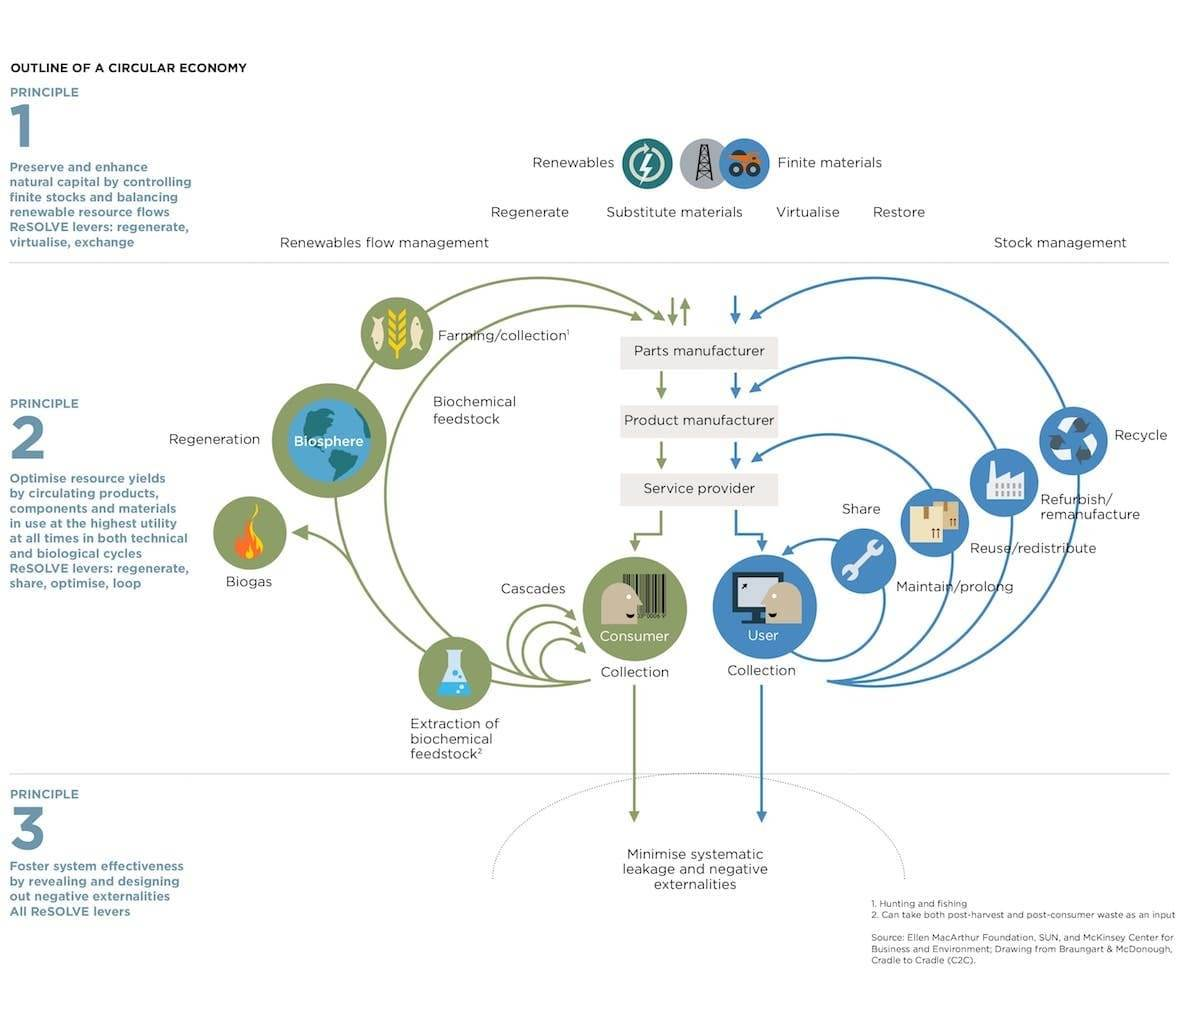 Circular flow chart of materials and components.